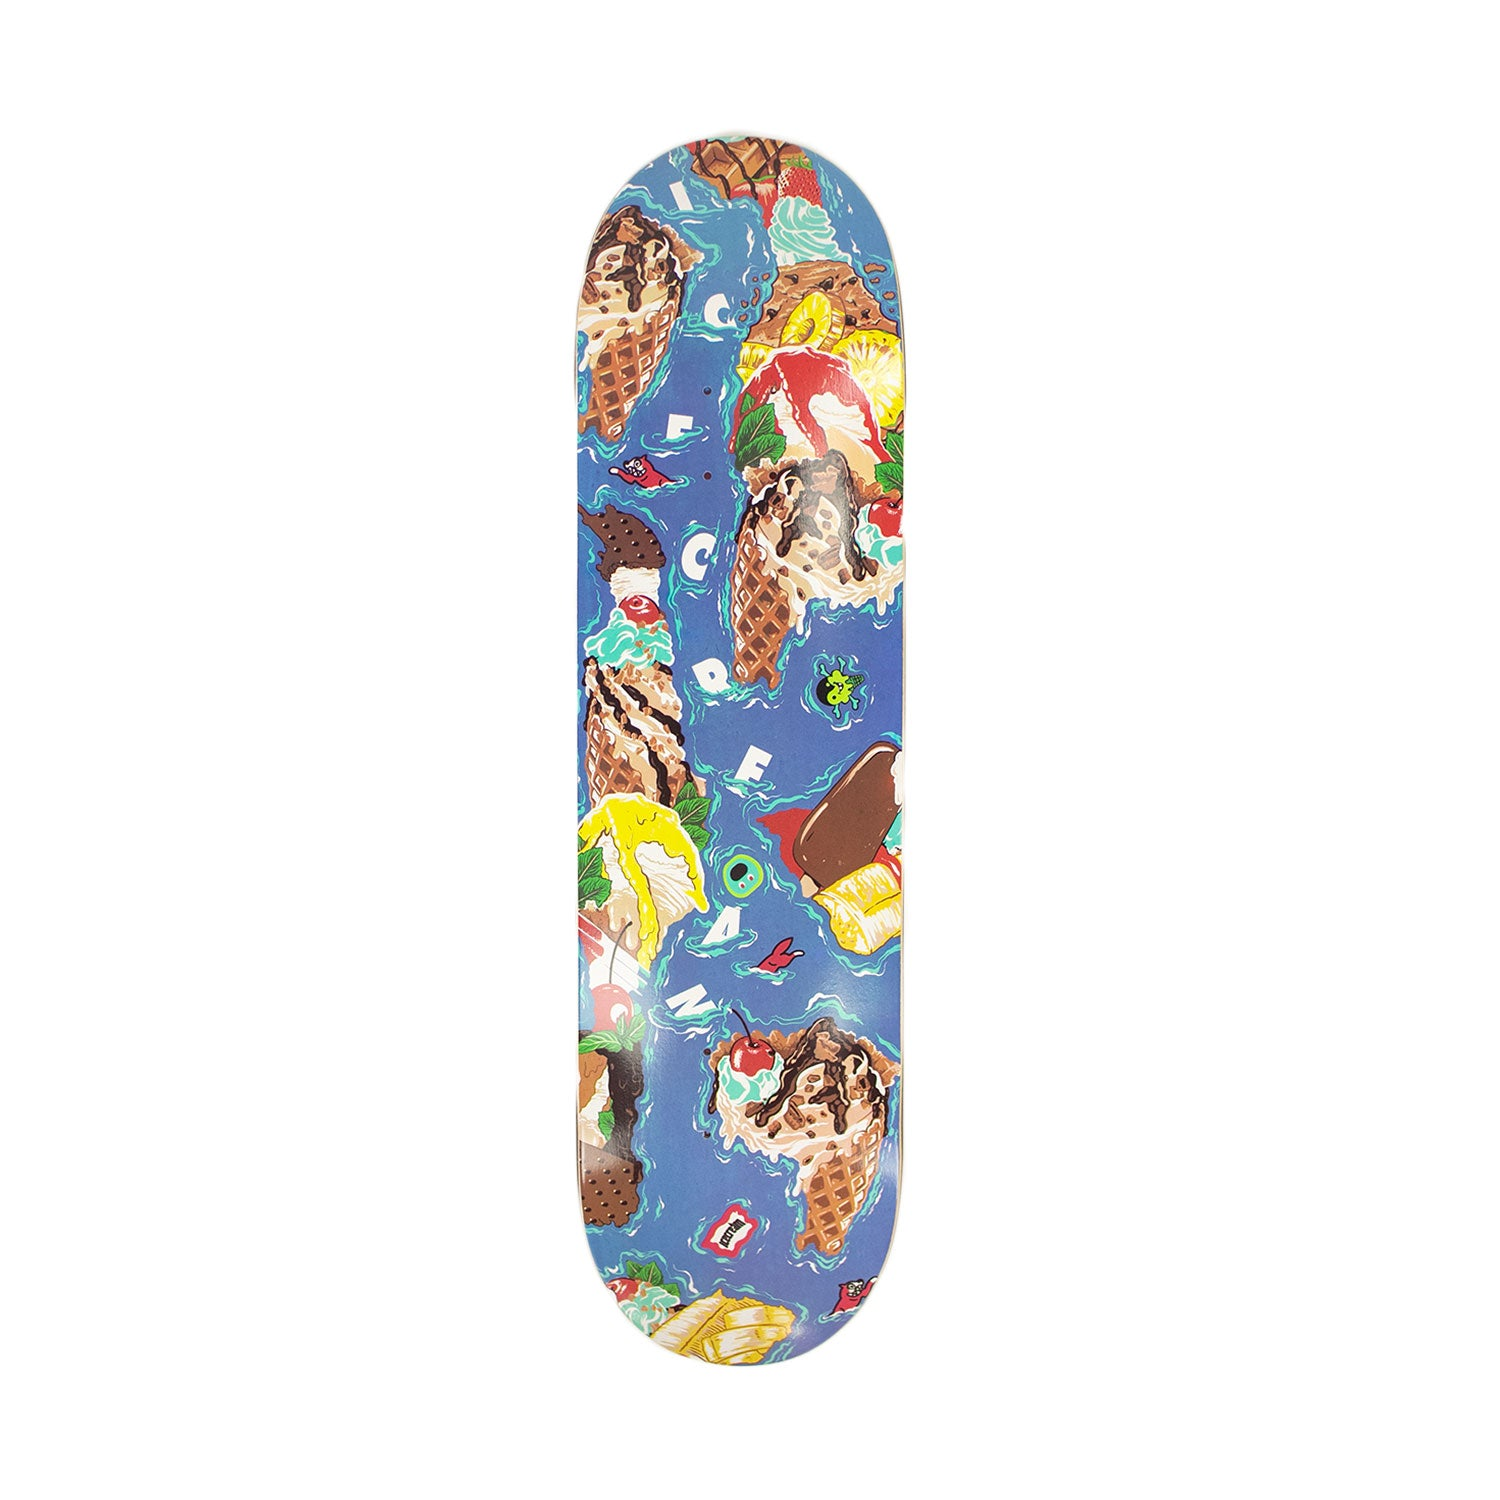 ICECREAM ISLAND SKATEDECK